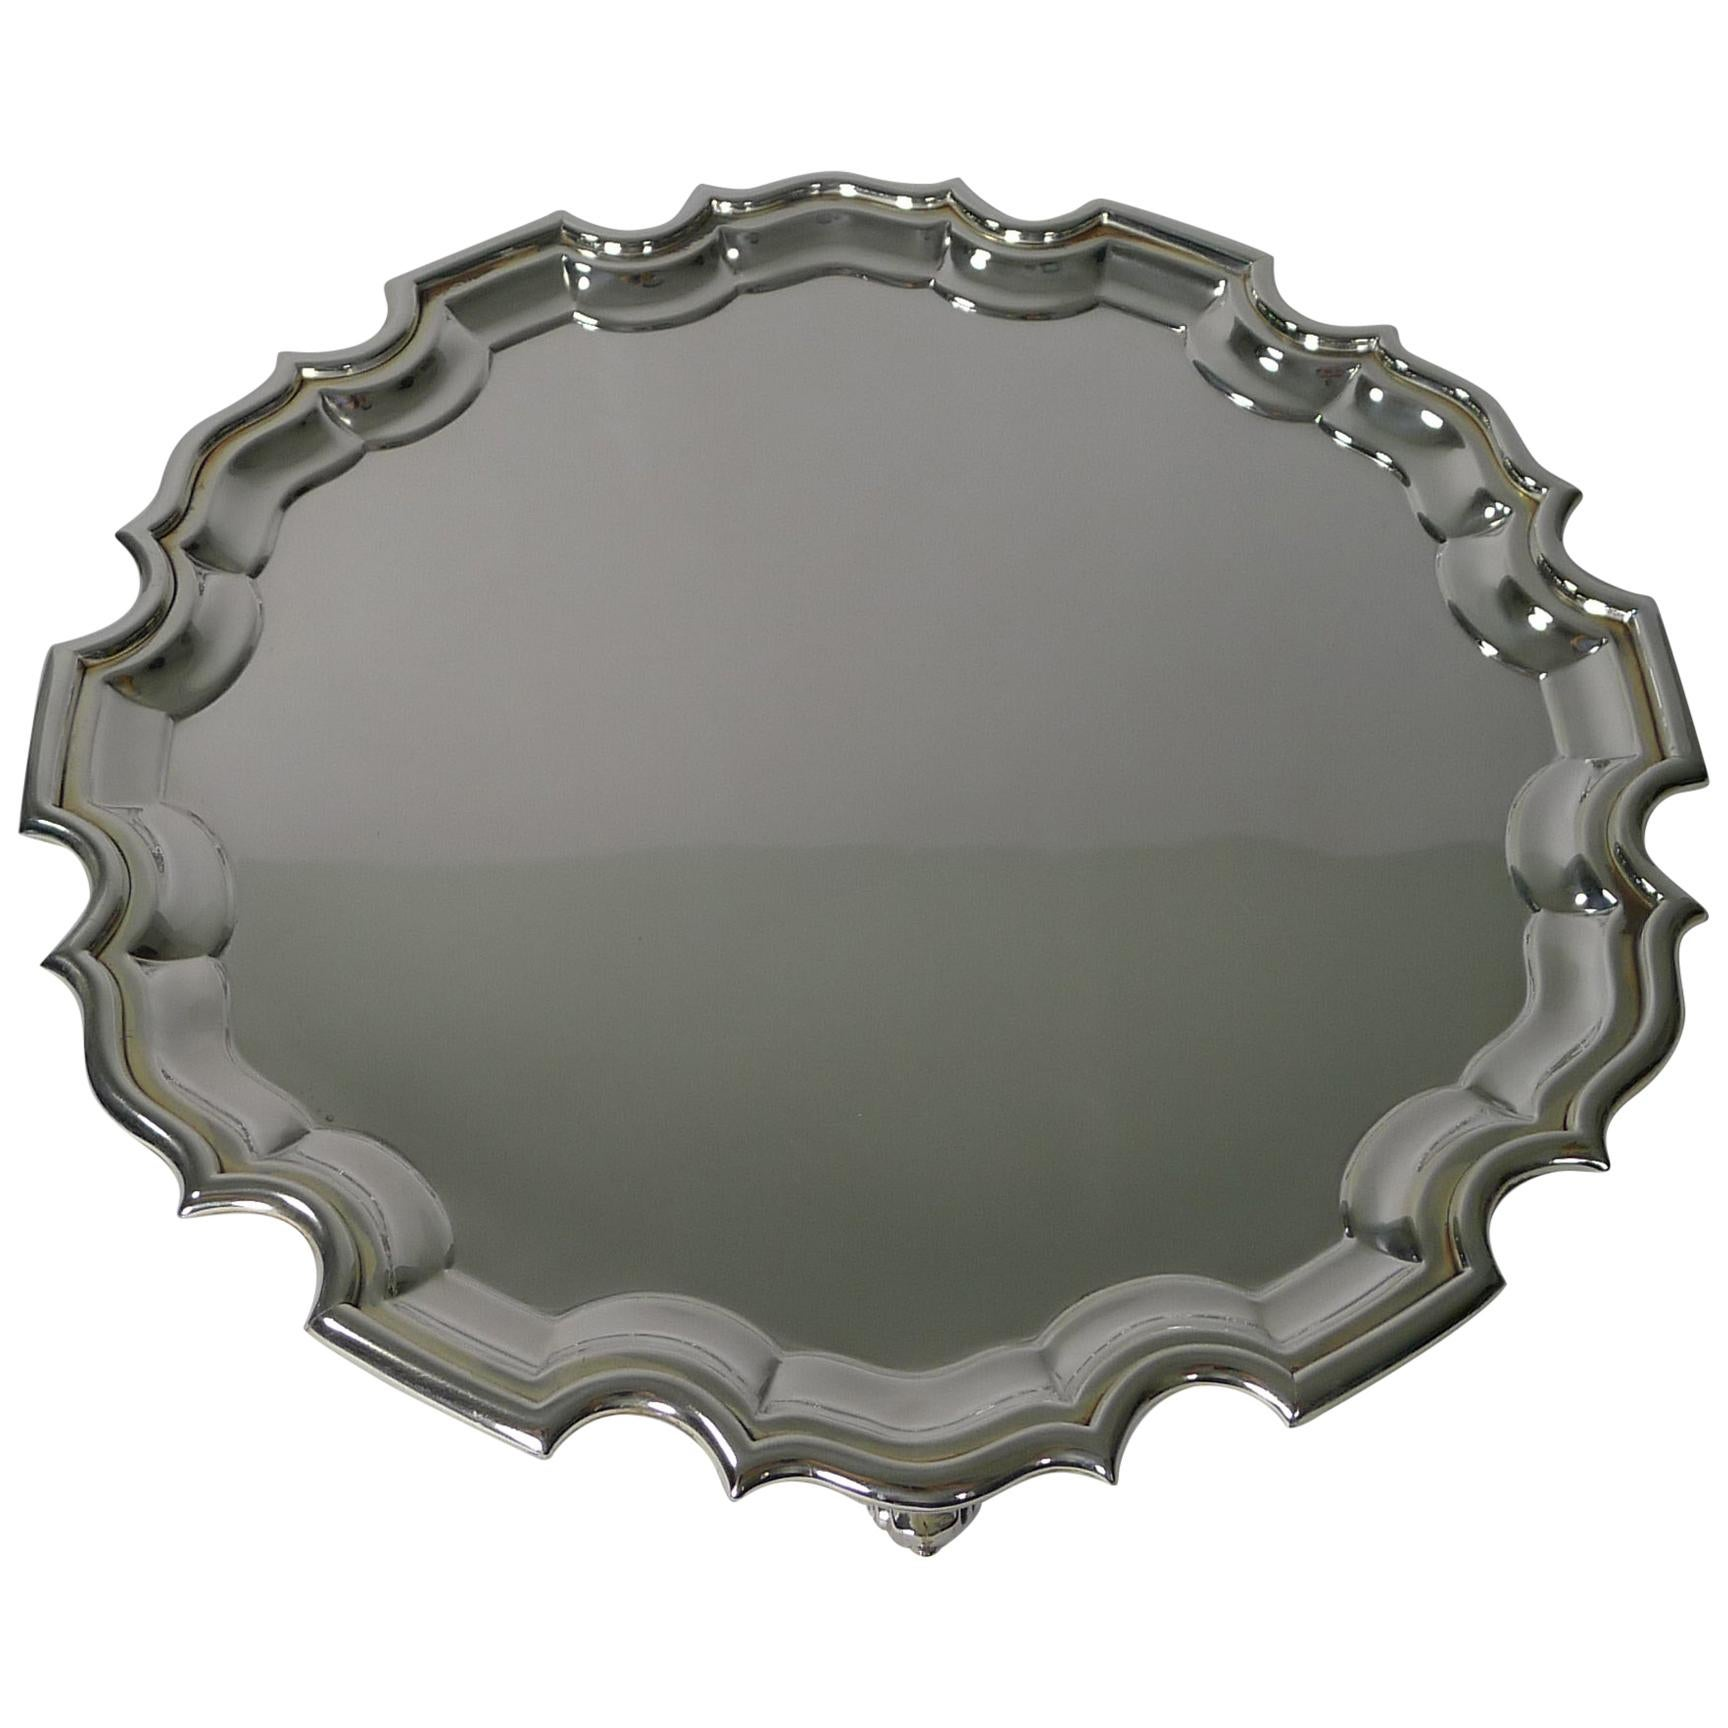 Antique English Silver Plated Cocktail or Drinks Tray / Salver, circa 1910